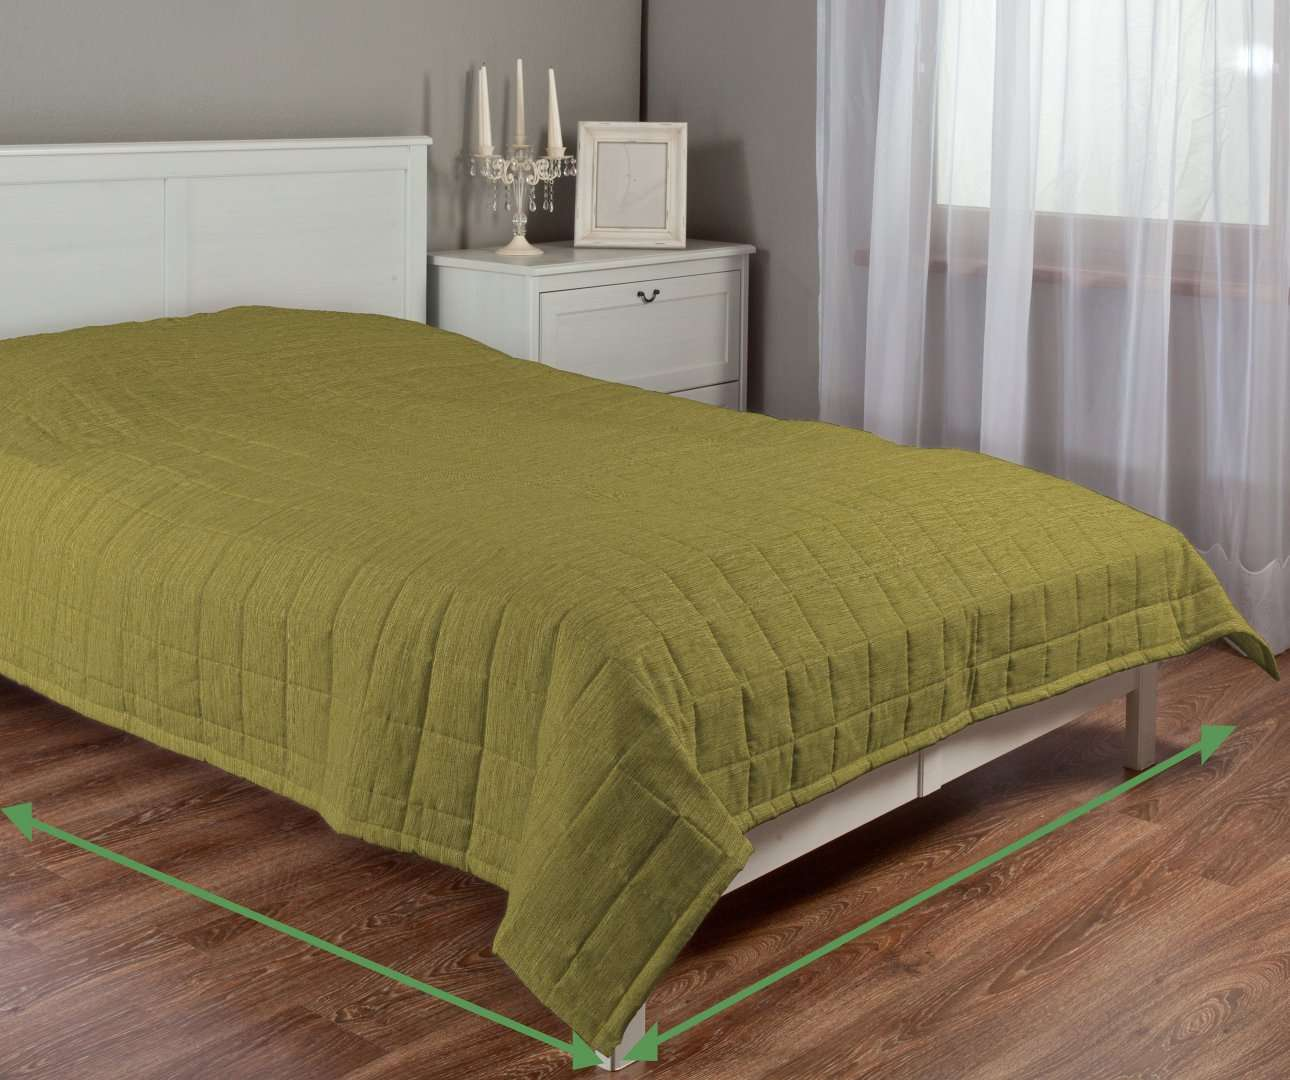 Quilted throw (check quilt pattern) in collection Chenille, fabric: 160-47